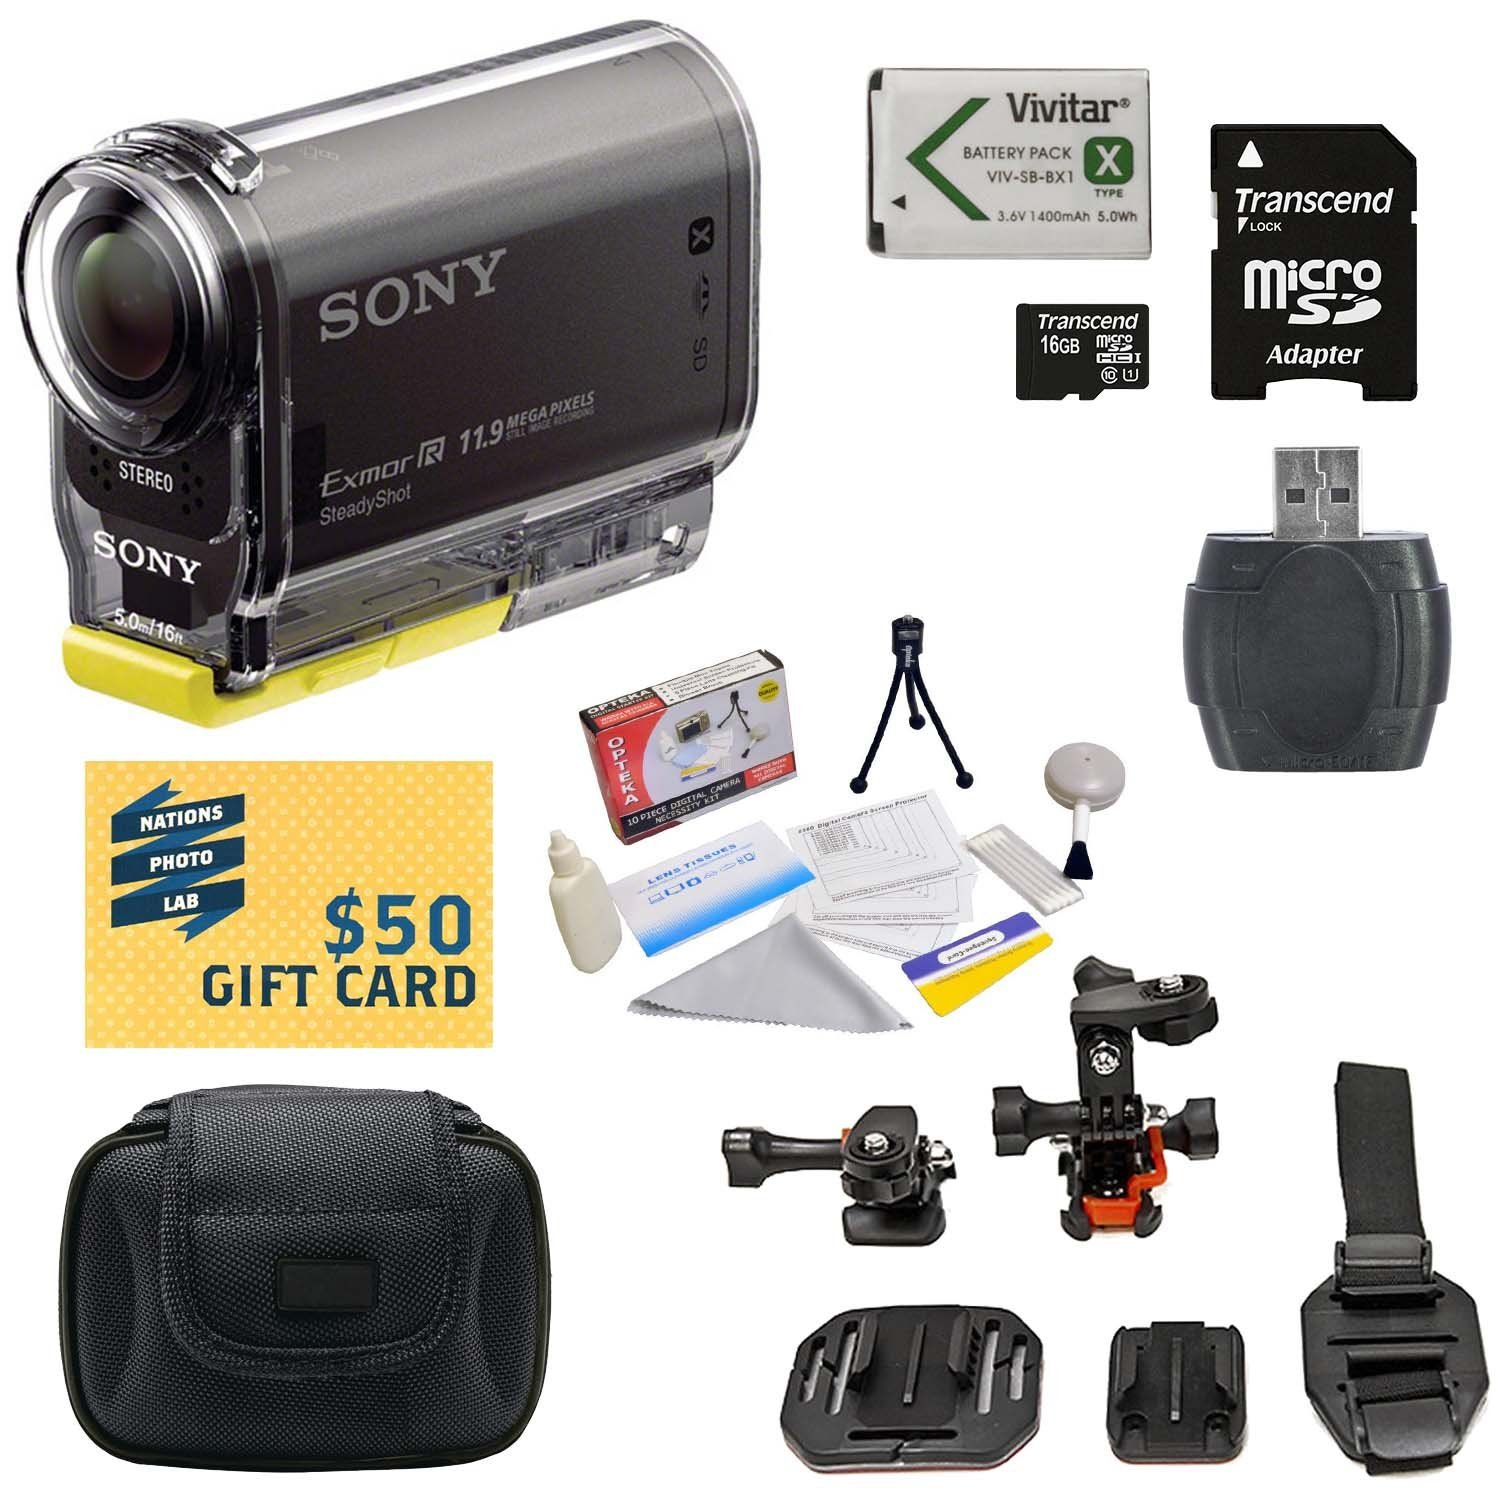 Sony HDR-AS30V HD Action Camcorder with 16GB Micro SD Card, Card Reader, High Capacity Li-ion Battery, Hard Shell Carrying Case, All-in-1 Helmet Kit, Lens Cleaning Kit, $50 Gift Card